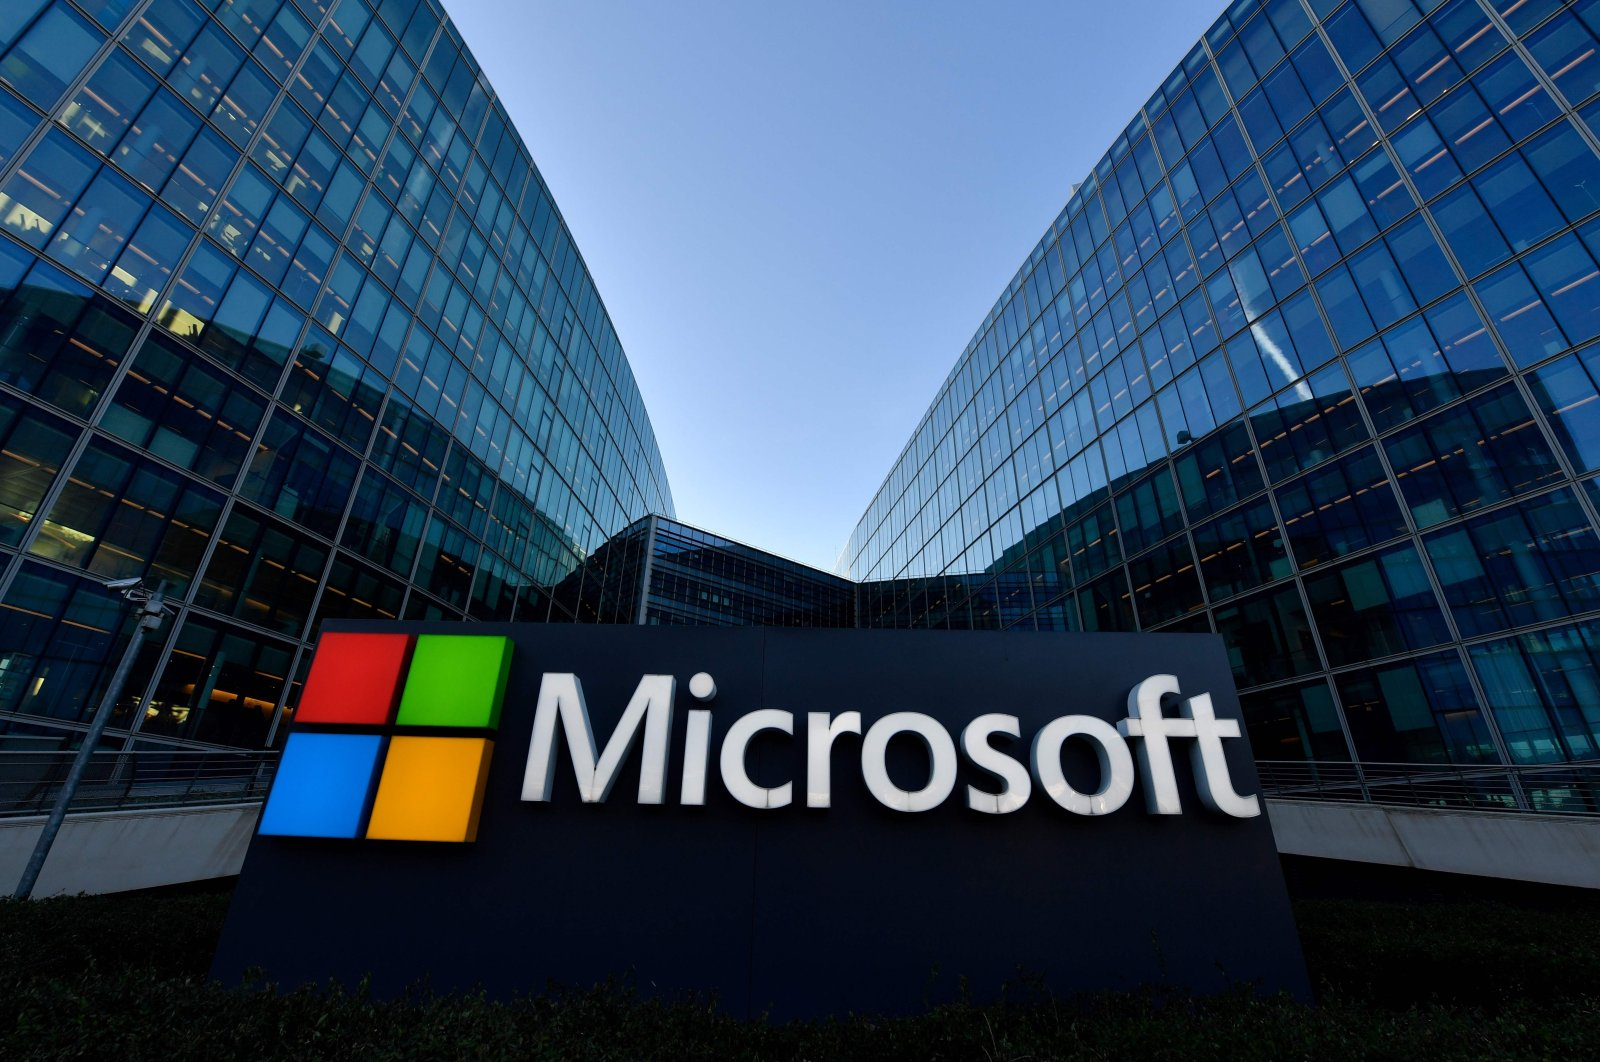 The Microsoft logo is seen at the French headquarters of the U.S. multinational technology company in Issy-Les-Moulineaux, a Paris suburb, France, March 6, 2018. (AFP Photo)